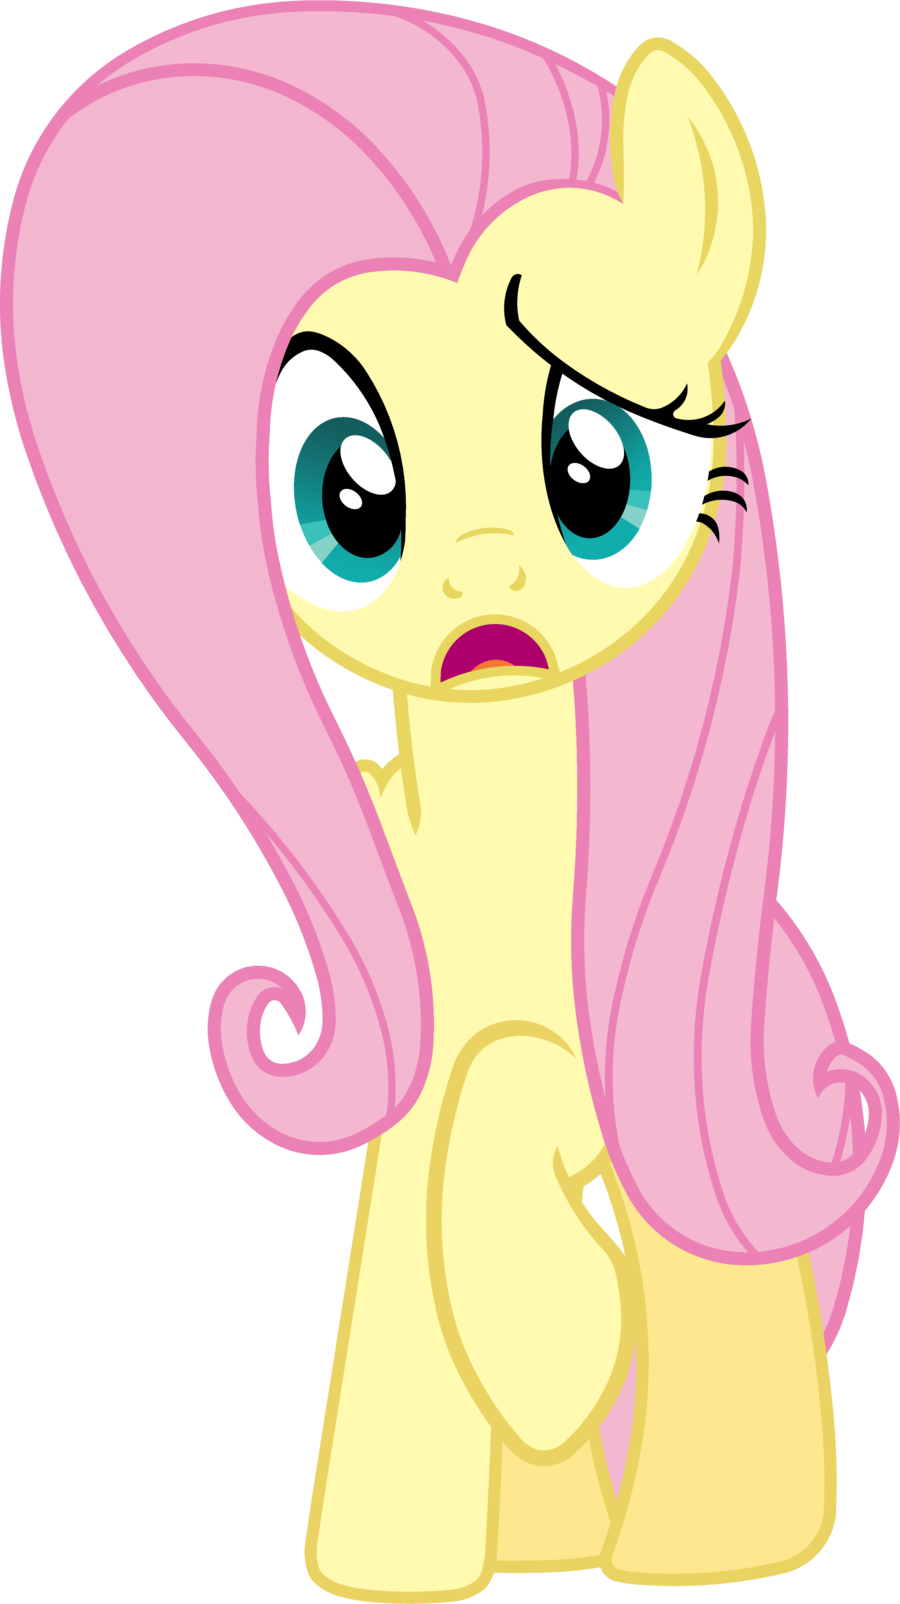 Confused mlp png. Fluttershy confusion by bobthelurker